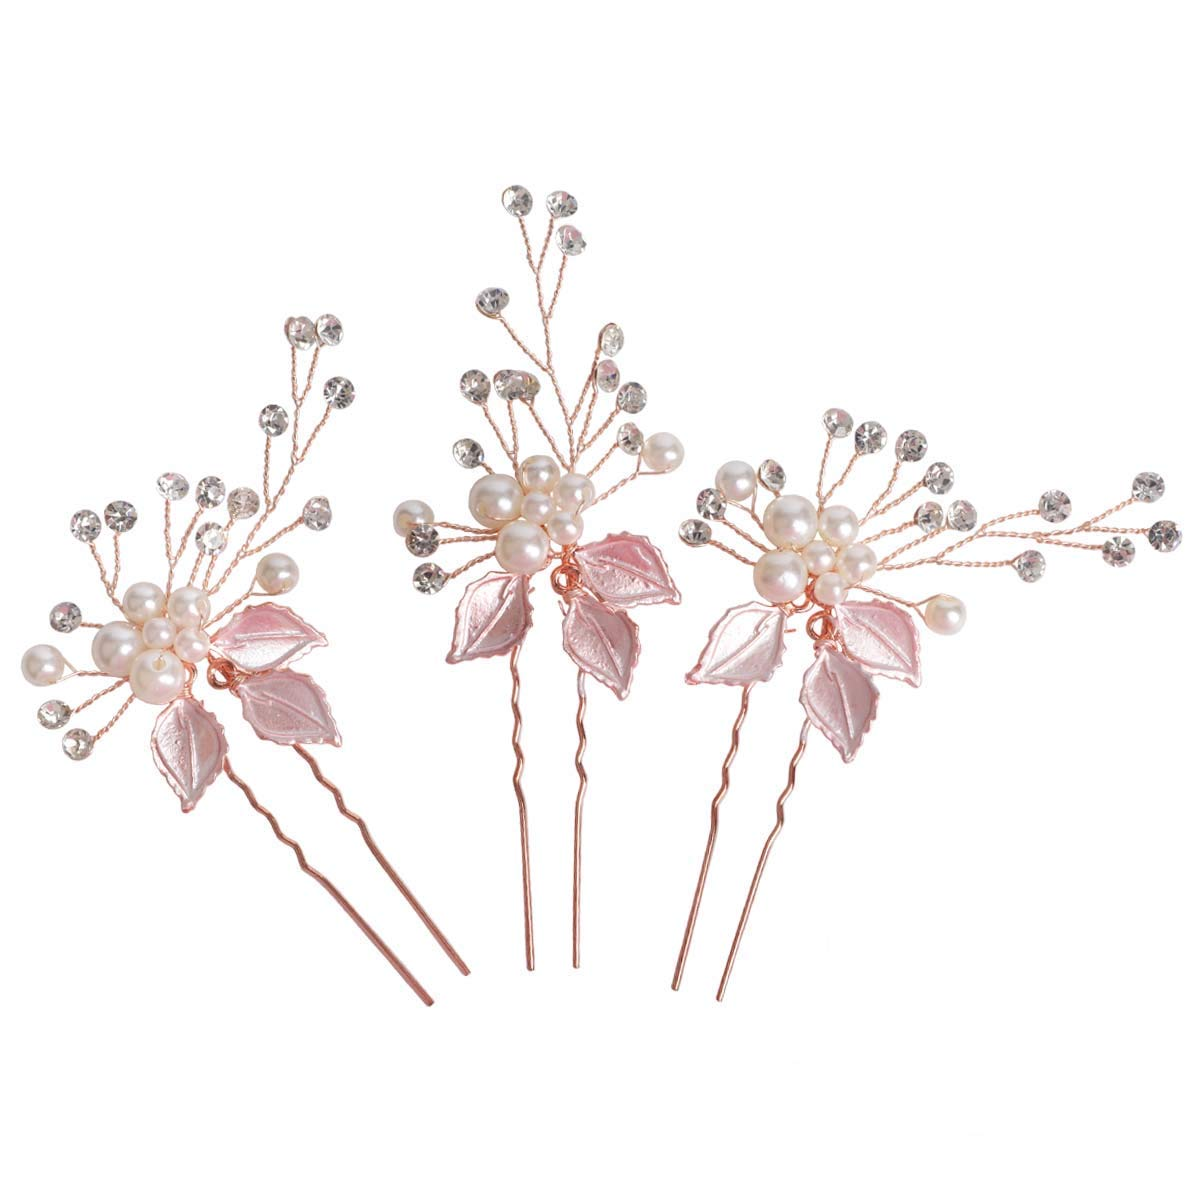 Sppry Wedding Hair Pins (3 Pcs) - Elegant Pearl Leaf Crystal Hair Accessories for Bridal Women (Rose Gold)